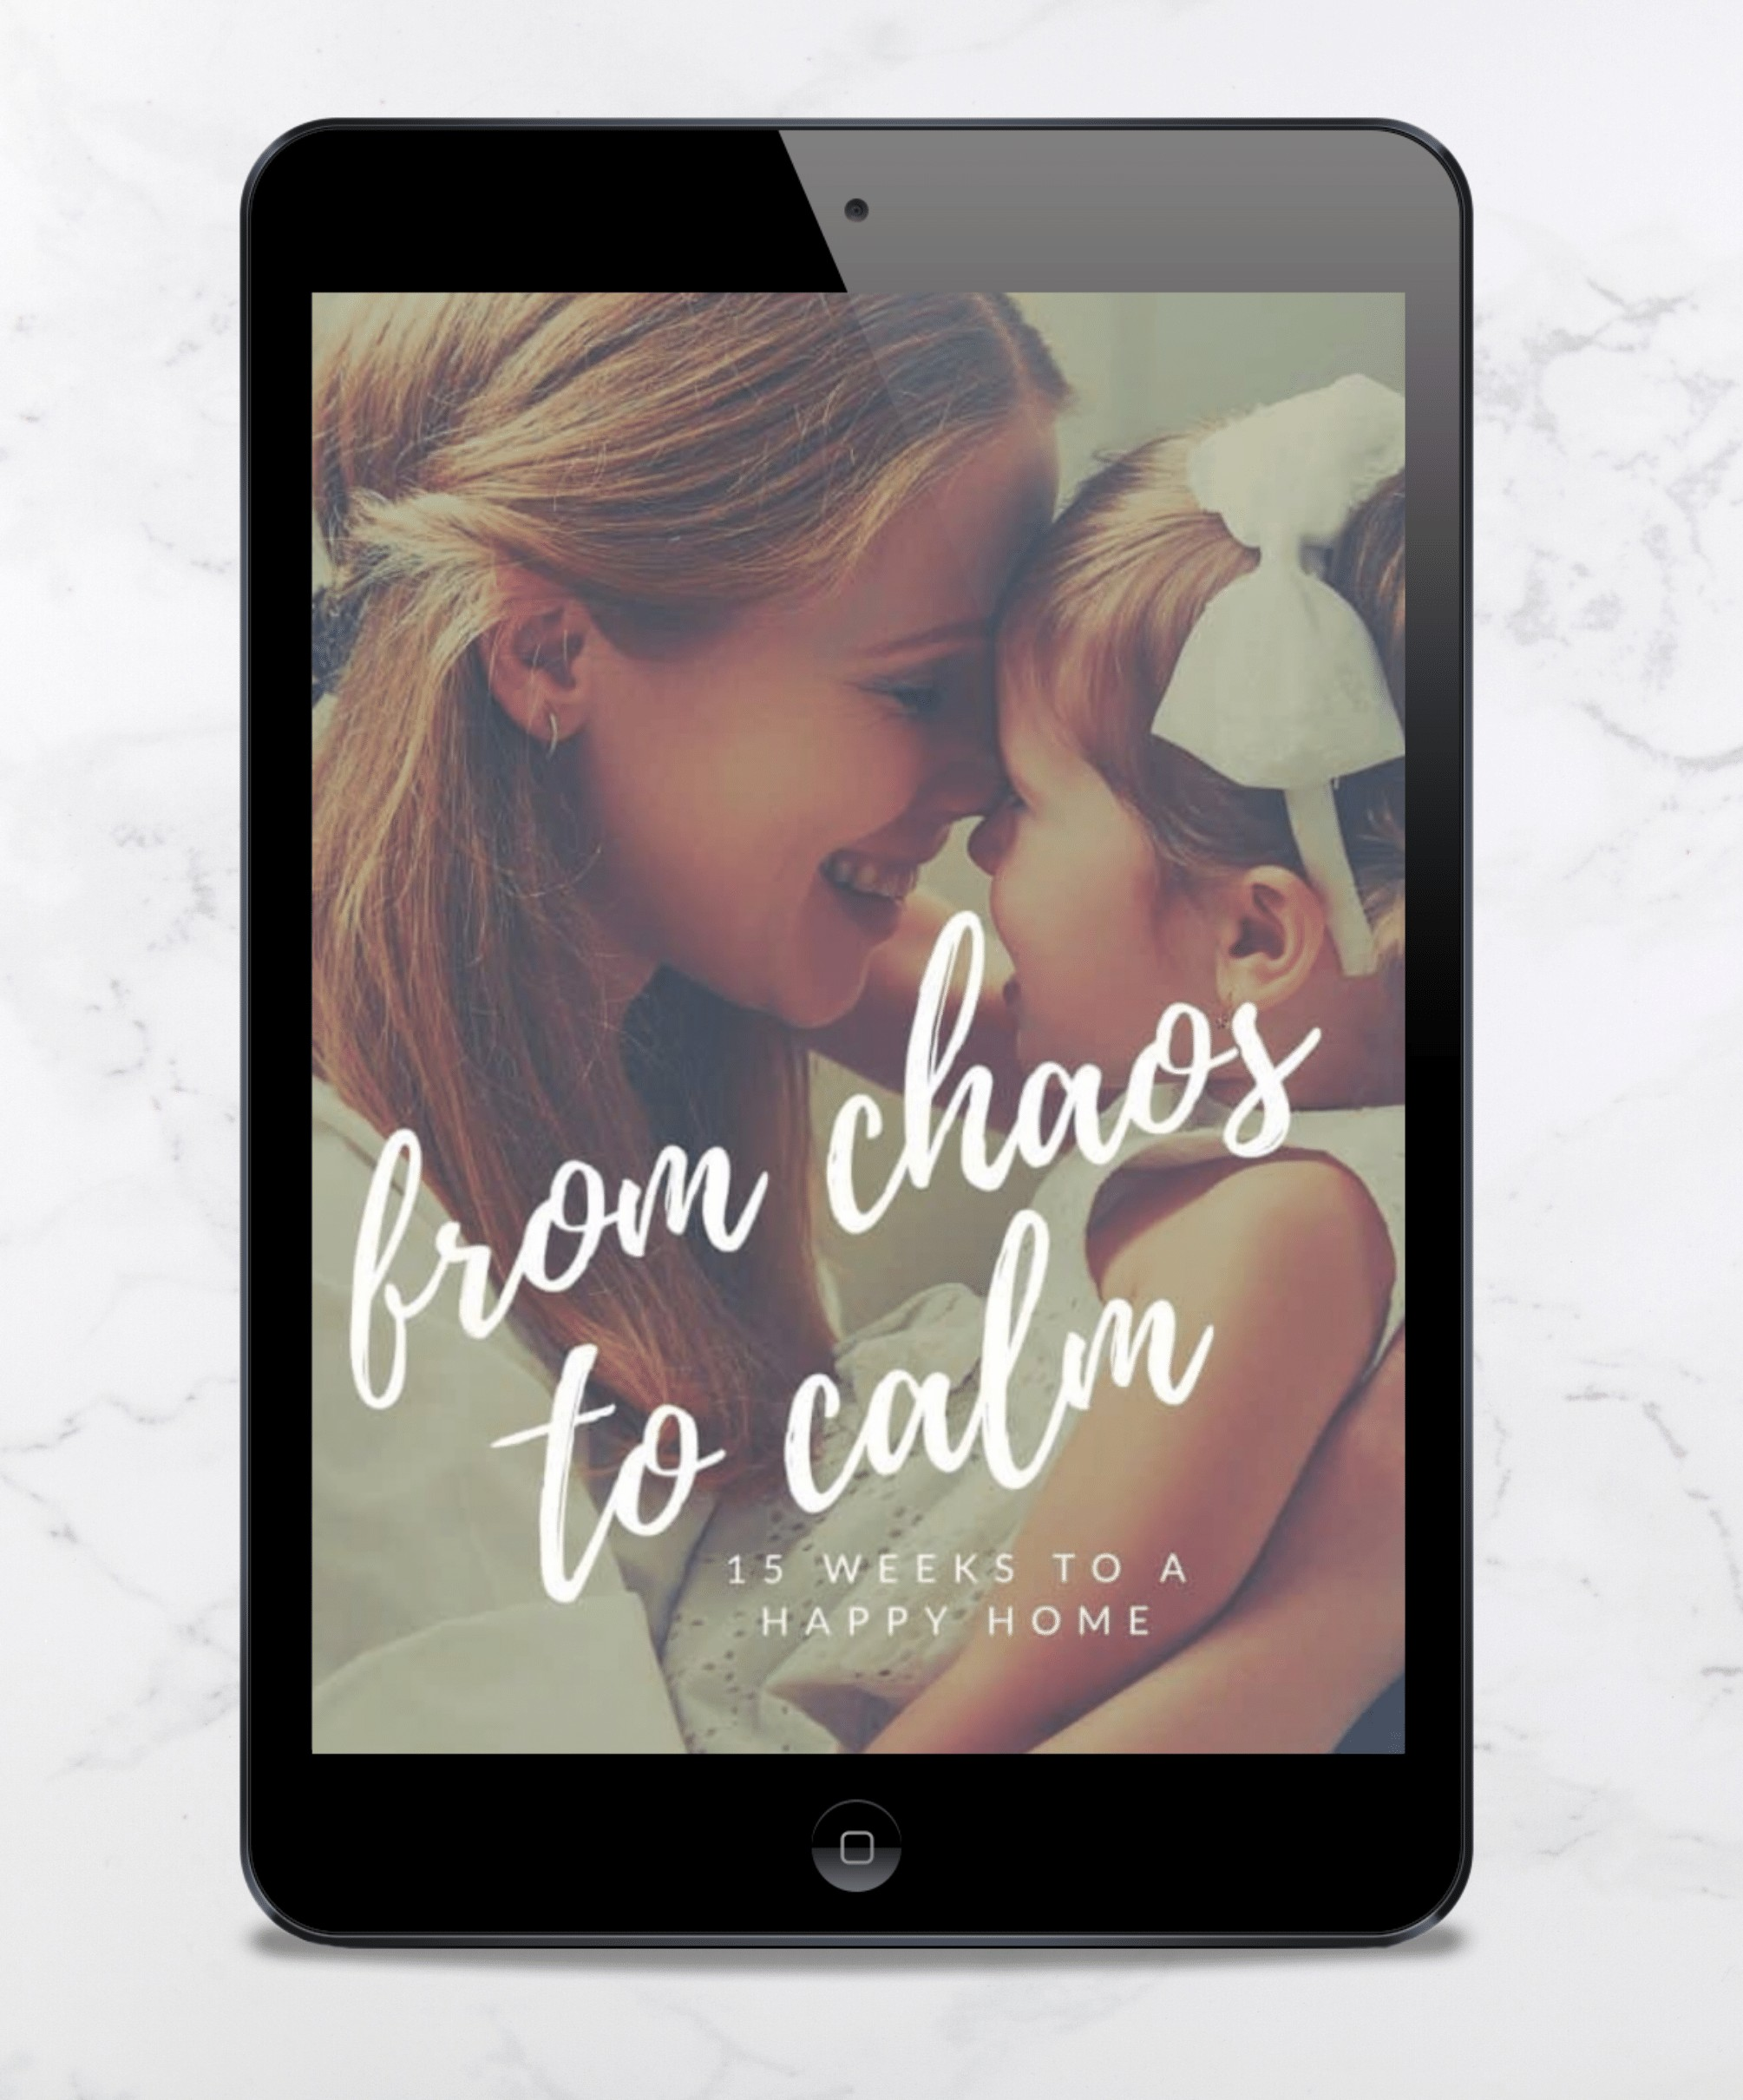 From Chaos to Calm eBook by Melissa Ringstaff